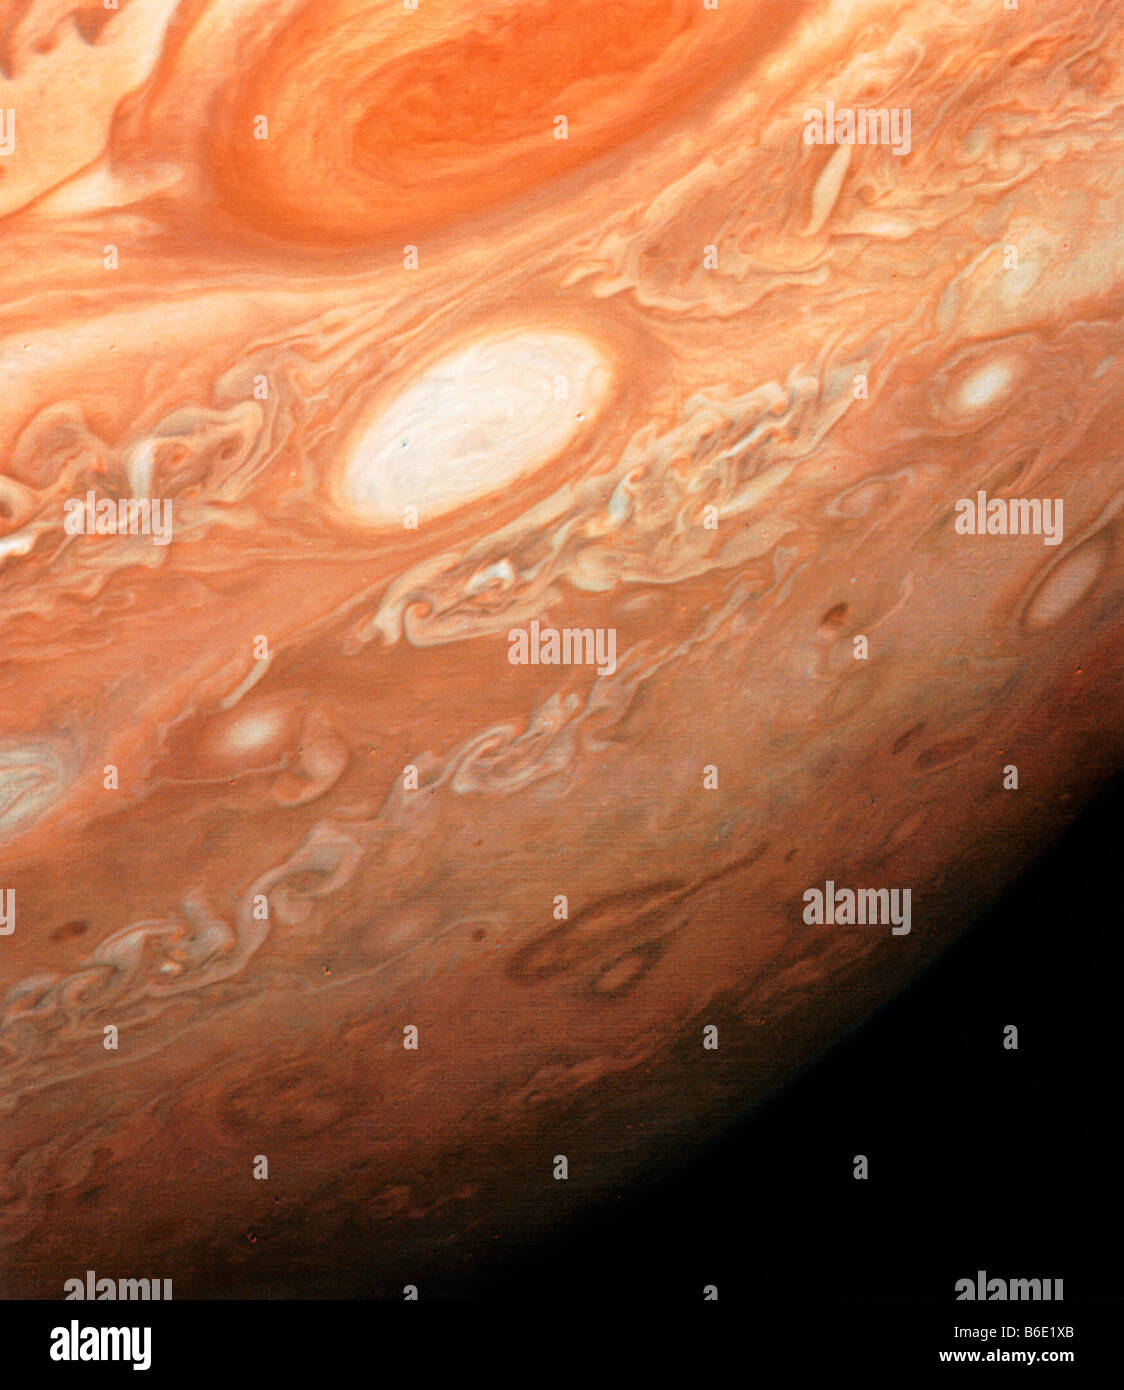 Photo of Jupiter, southern hemisphere from Great Red Spot to the south pole showing white oval cloud - Stock Image